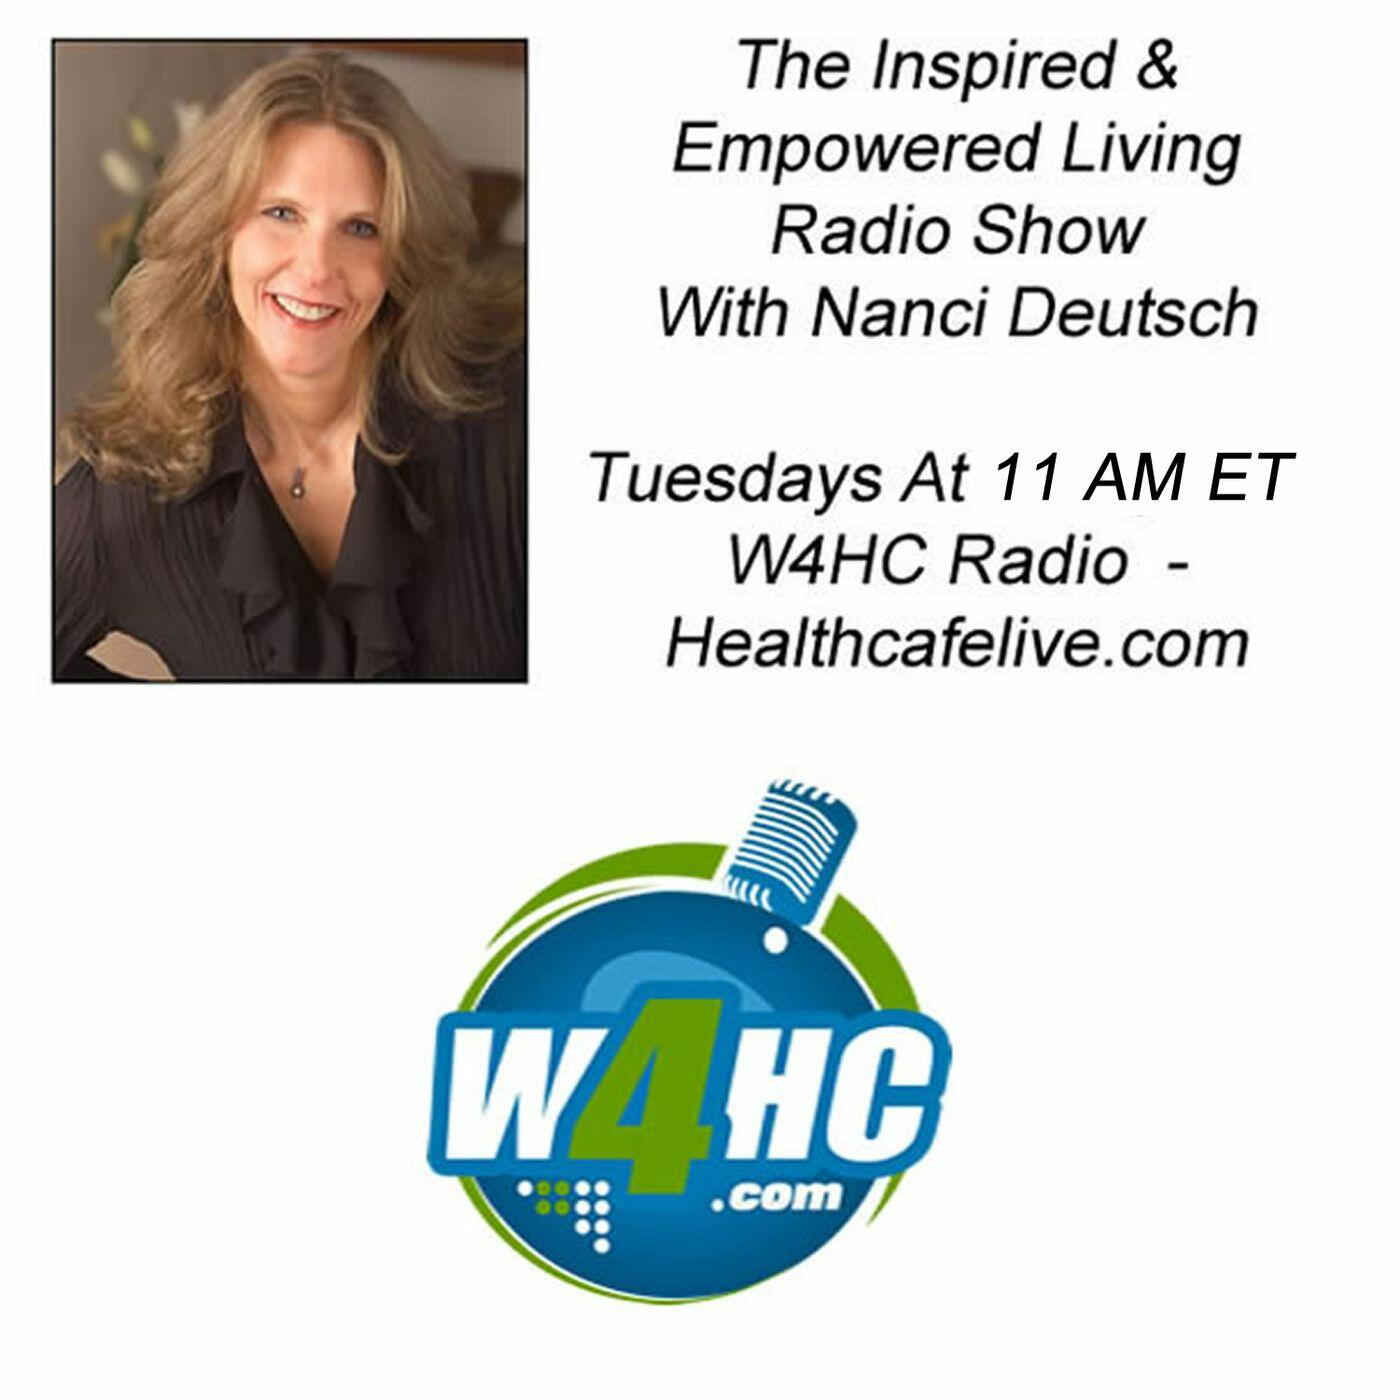 The Inspired & Empowered Living Radio Show